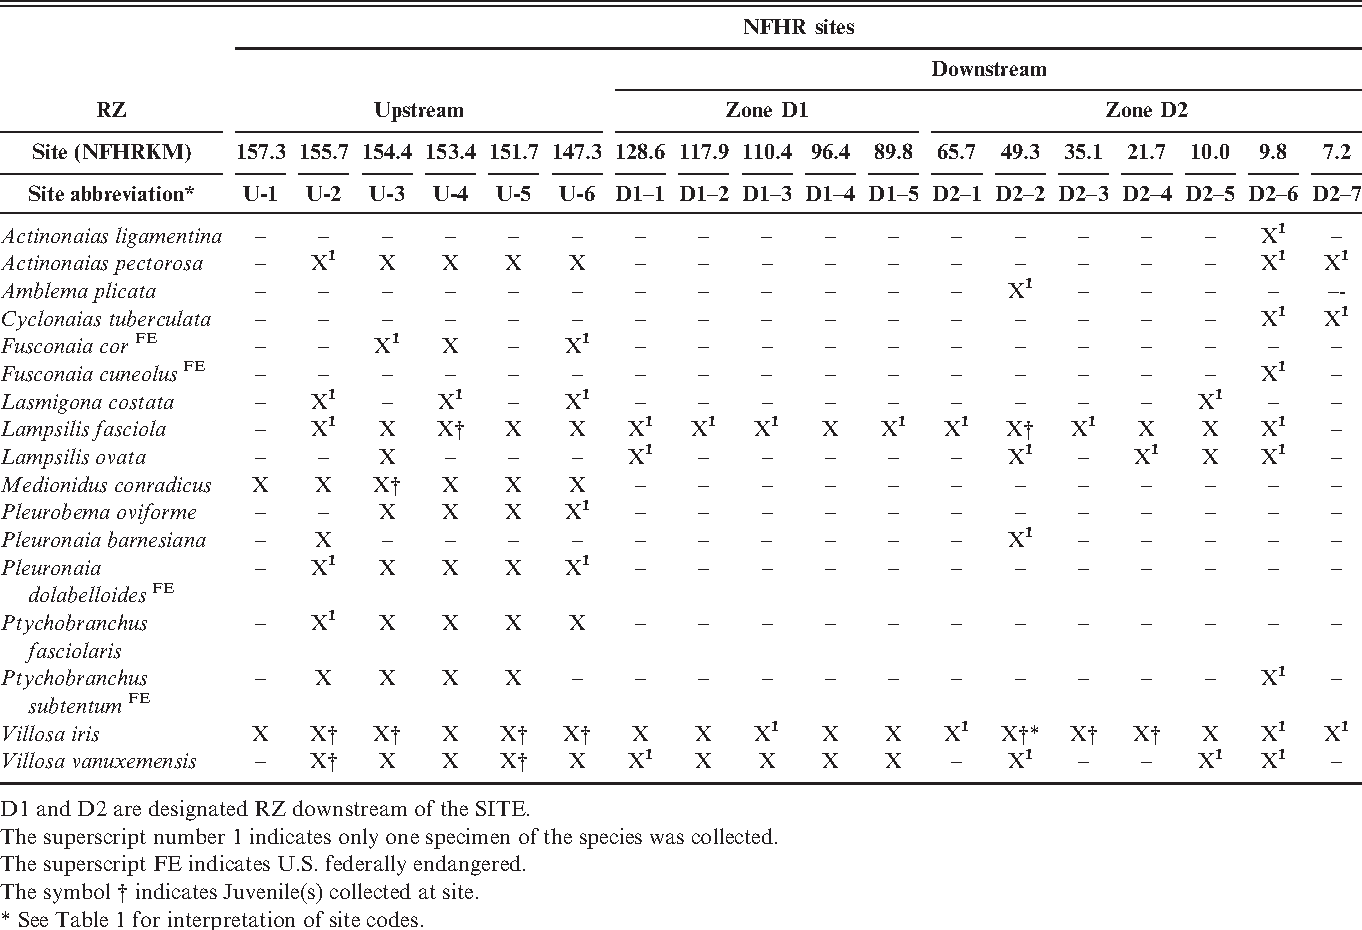 Table 3 from Freshwater Mussel (Unionidae) Abundance and Diversity